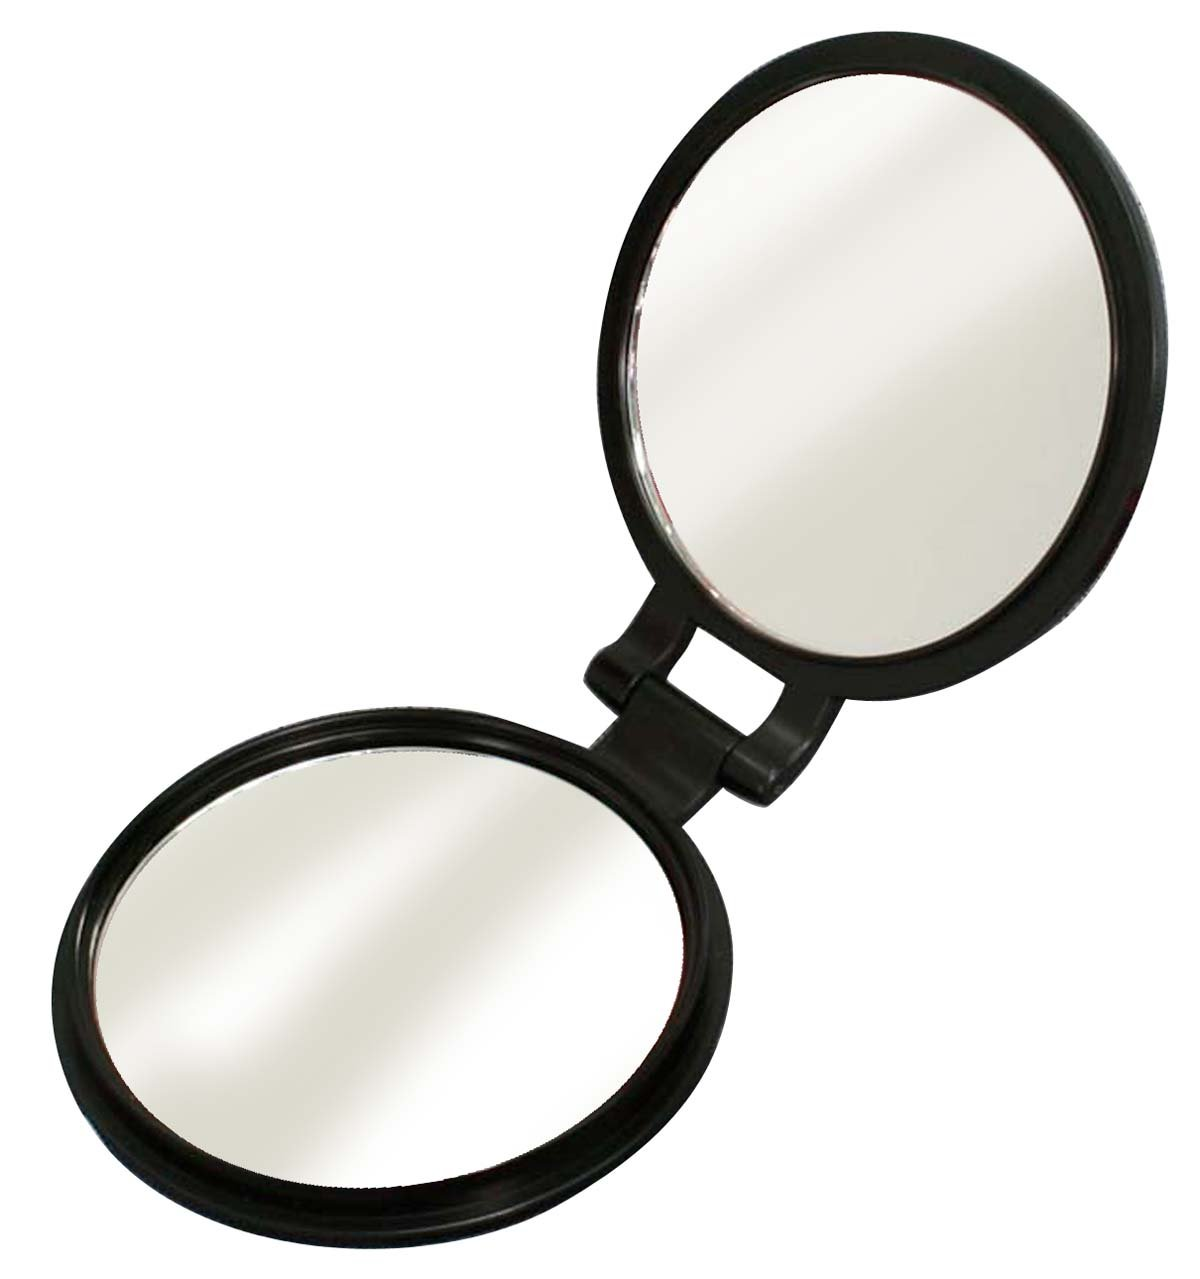 Japanese Make up compact mirror with 10X Magnifying from Japan YL-10 yamamura